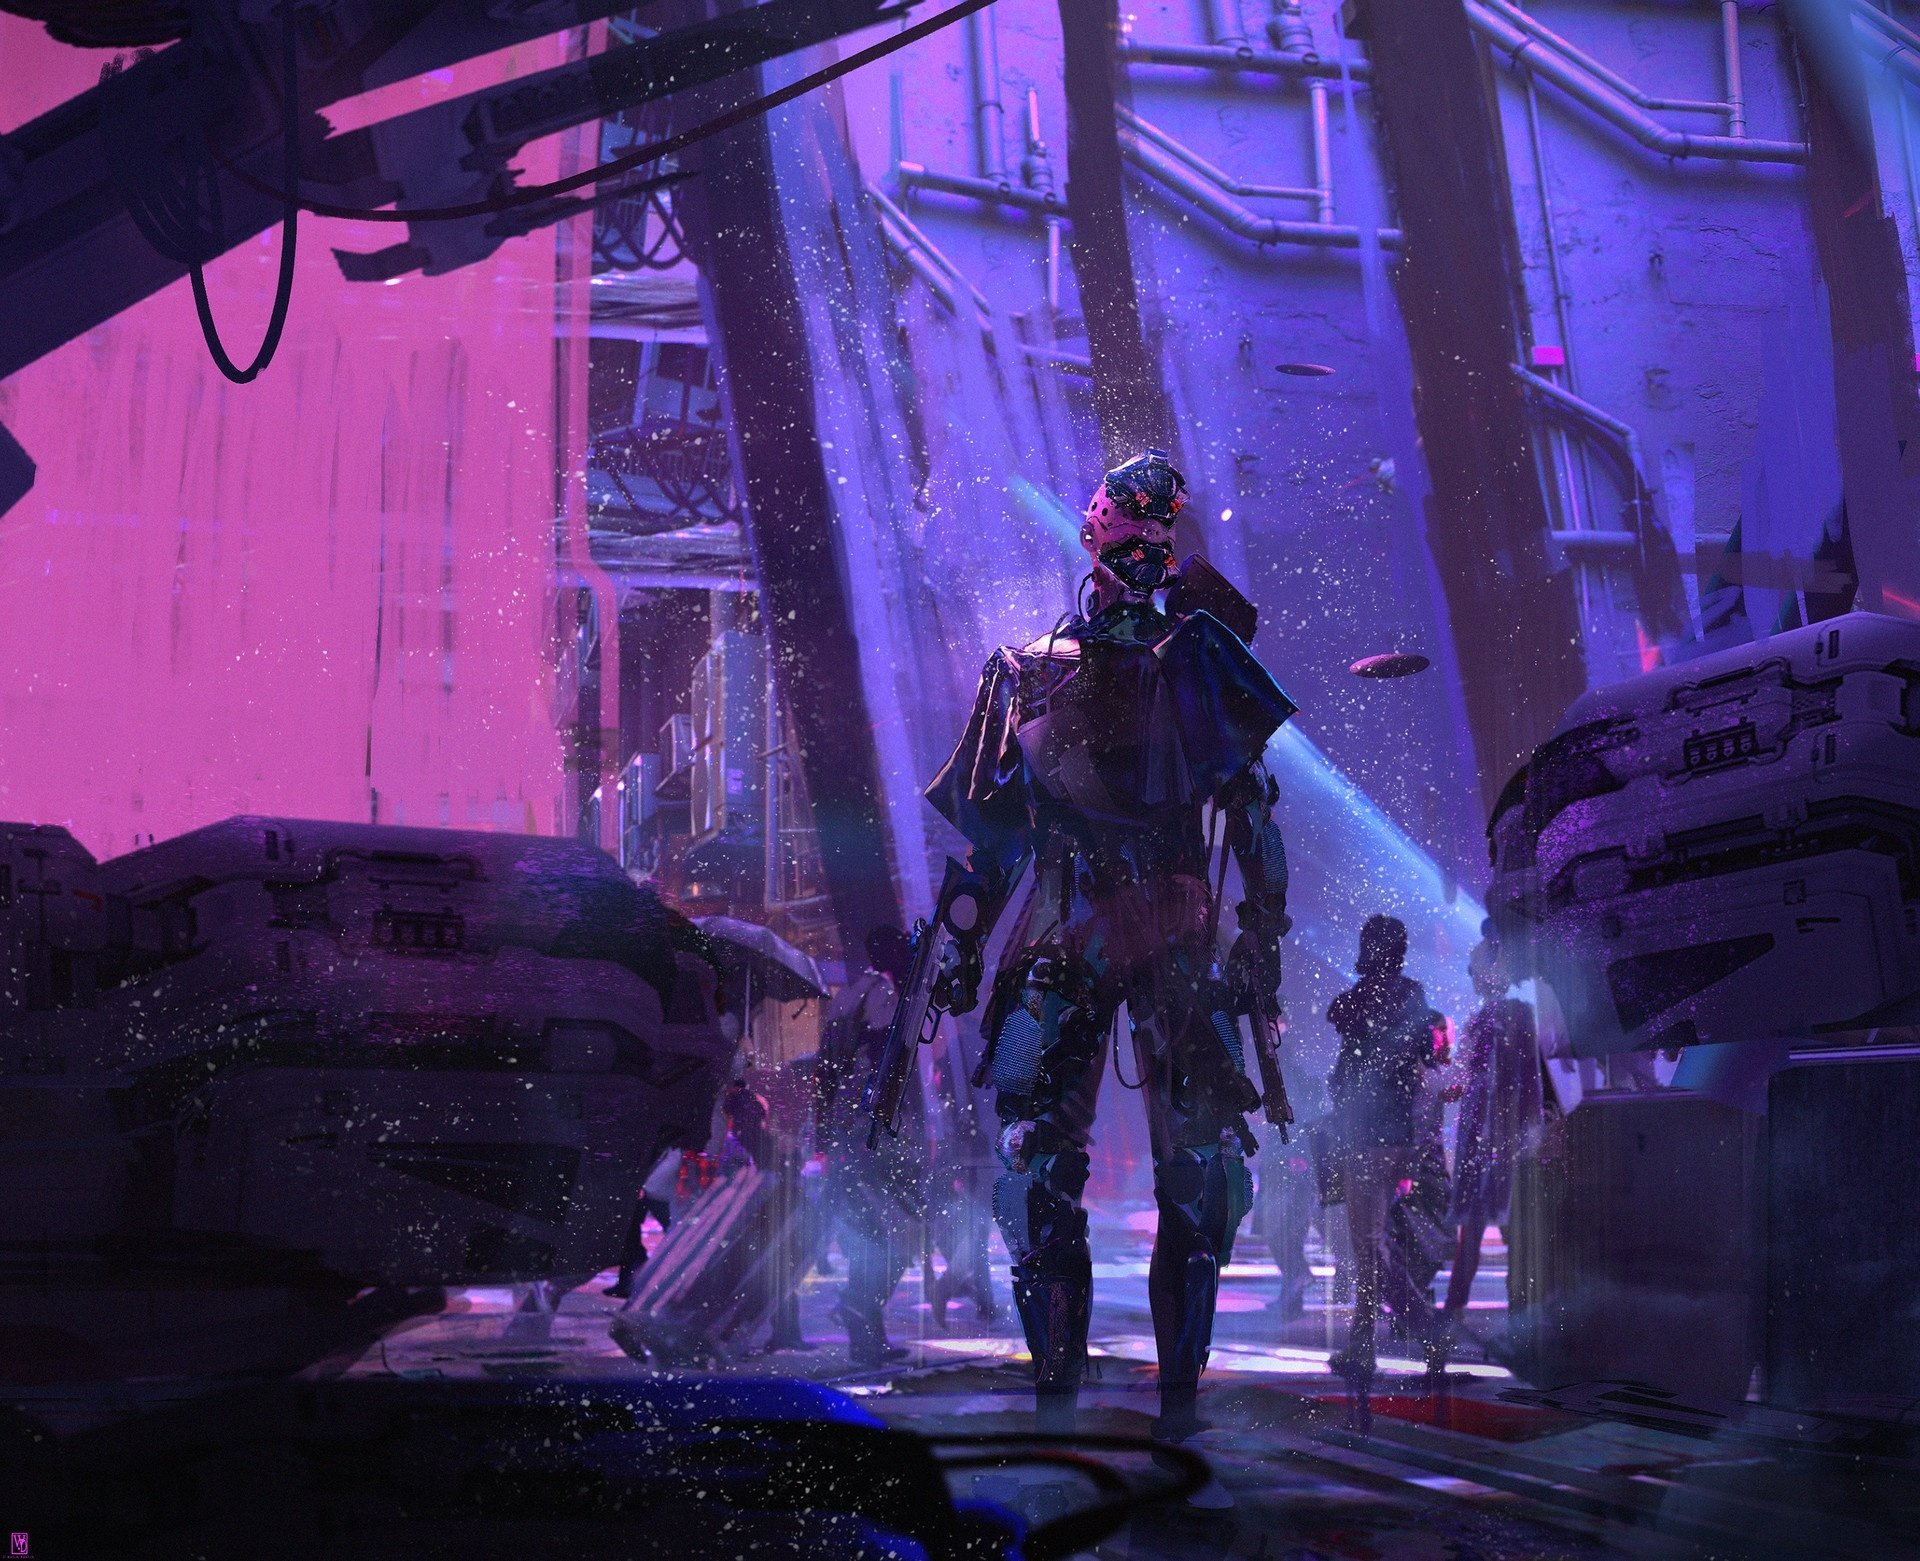 Sci Fi - Cyberpunk  Purple Warrior Cyborg Wallpaper